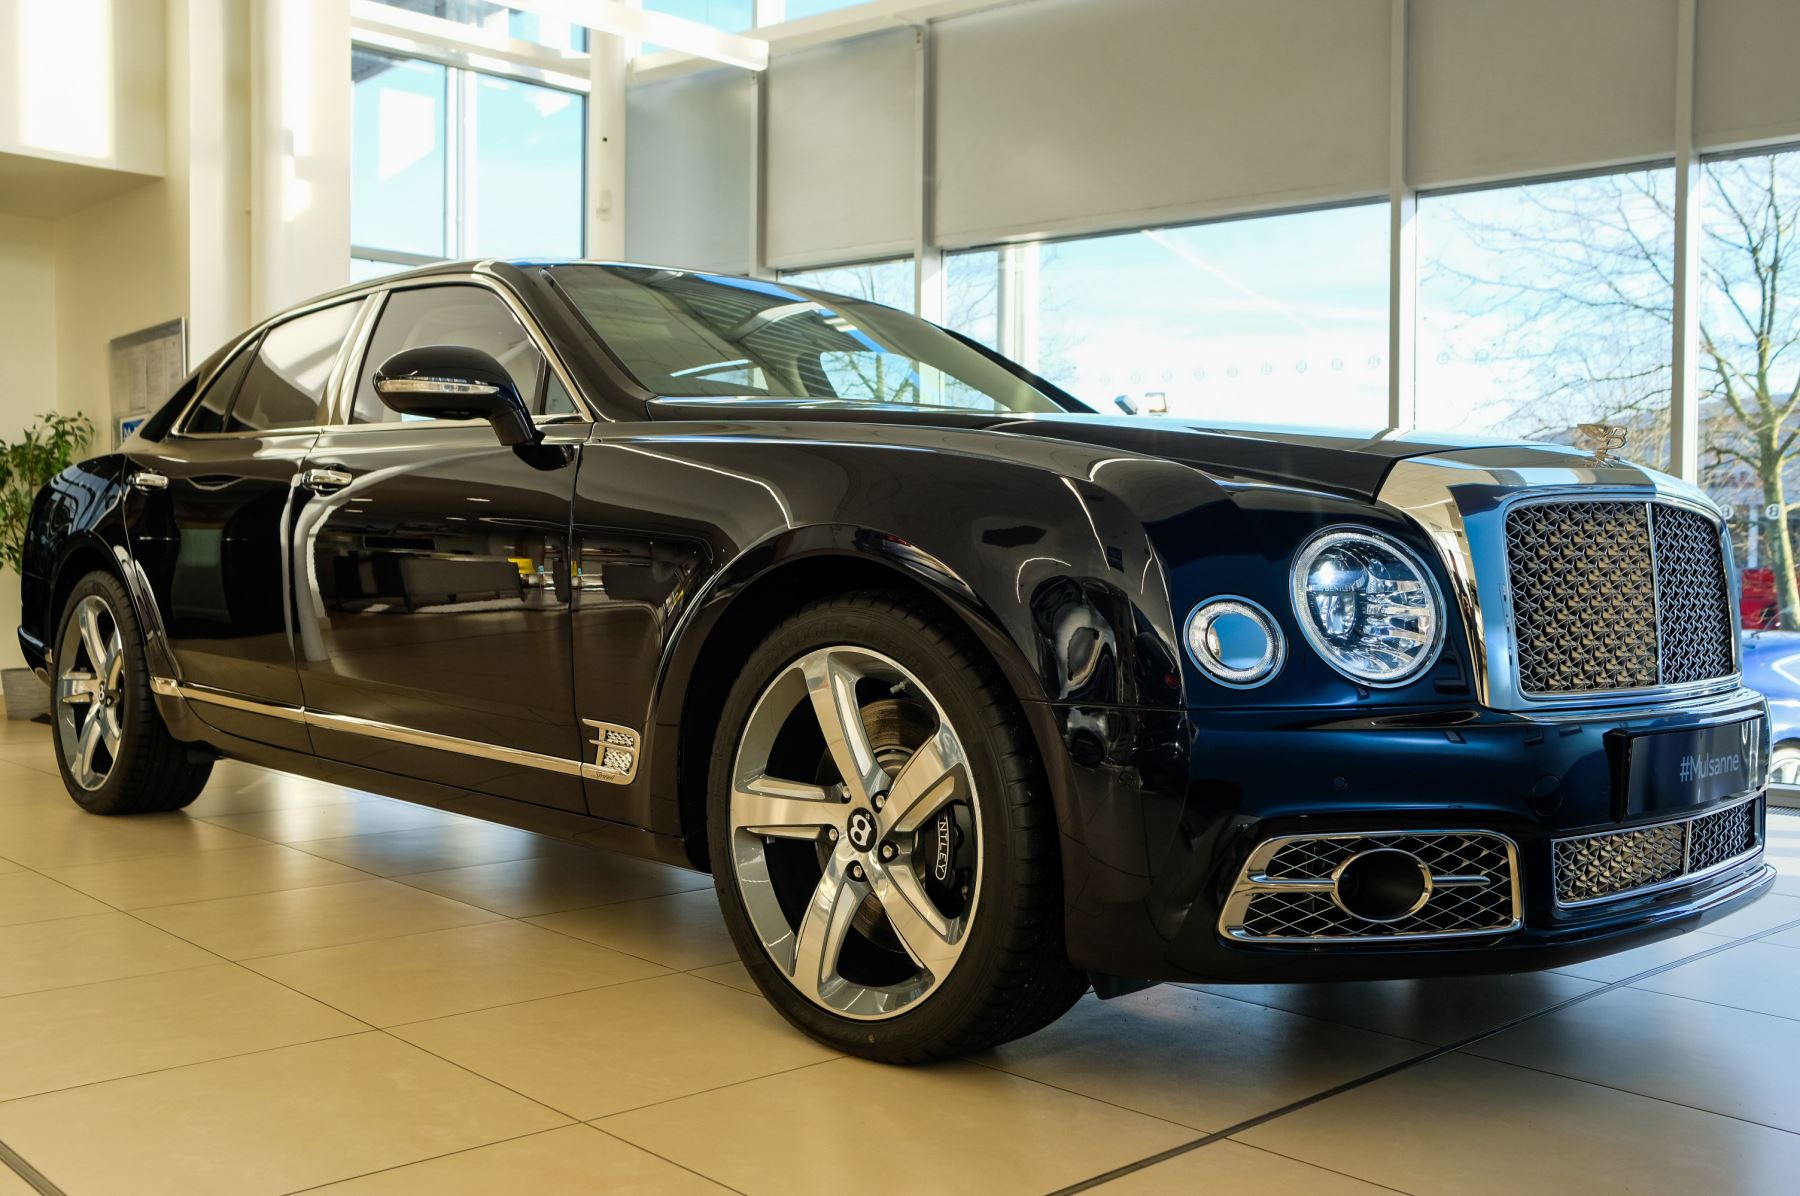 Bentley Mulsanne 0.0 6.8 V8 Speed - Speed Premier